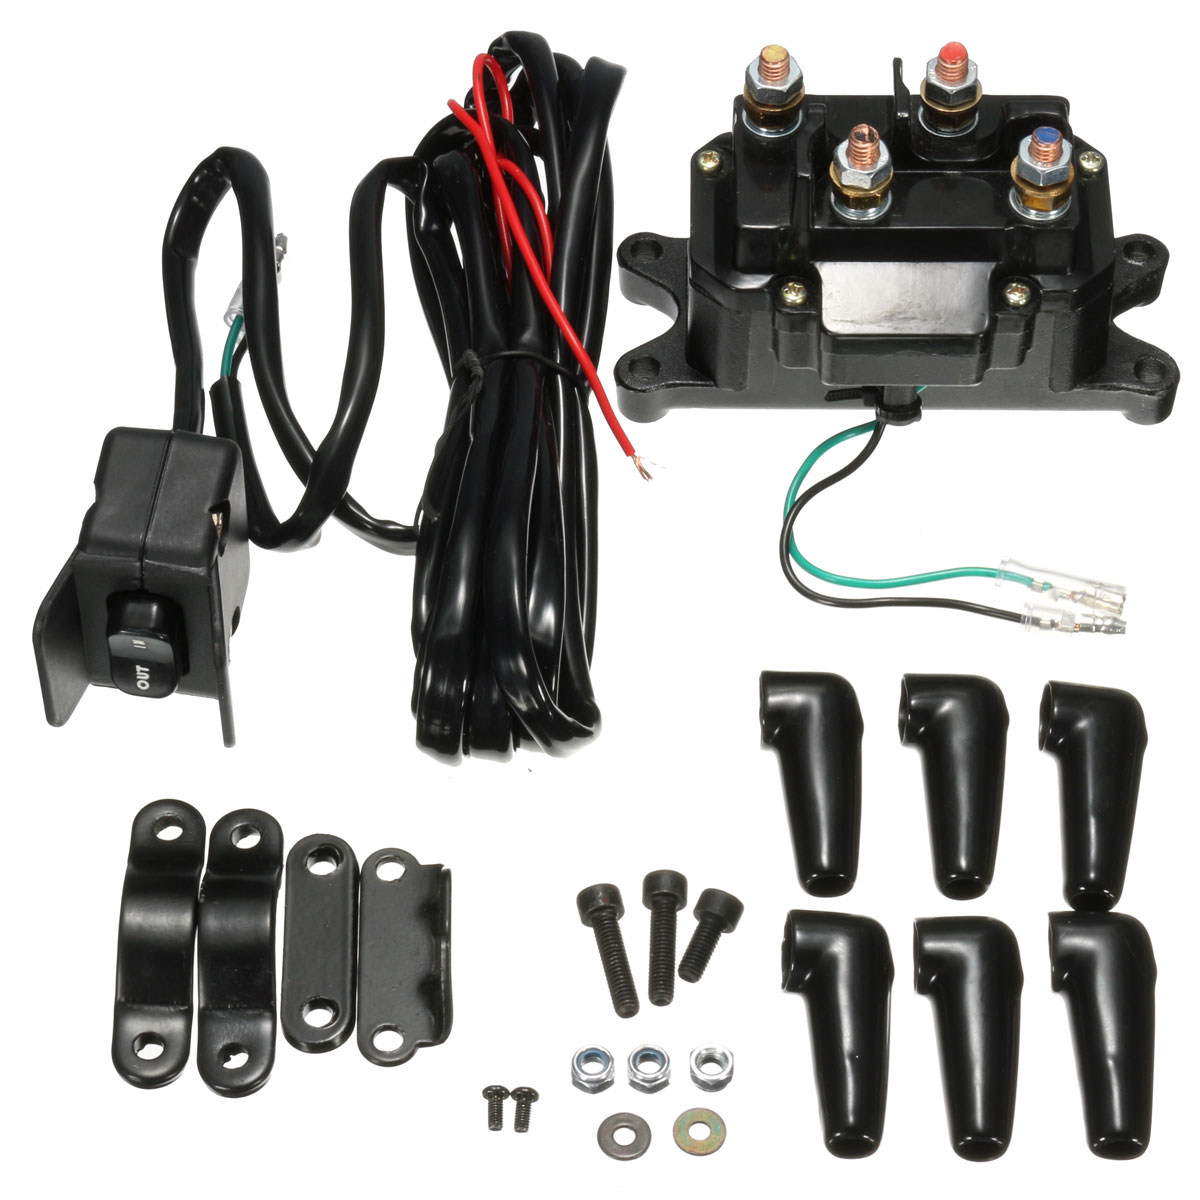 1 set winch rocker thumb switch combo 12v solenoid relay contactor for atv utv in car switches relays from automobiles motorcycles on aliexpress com  [ 1200 x 1200 Pixel ]